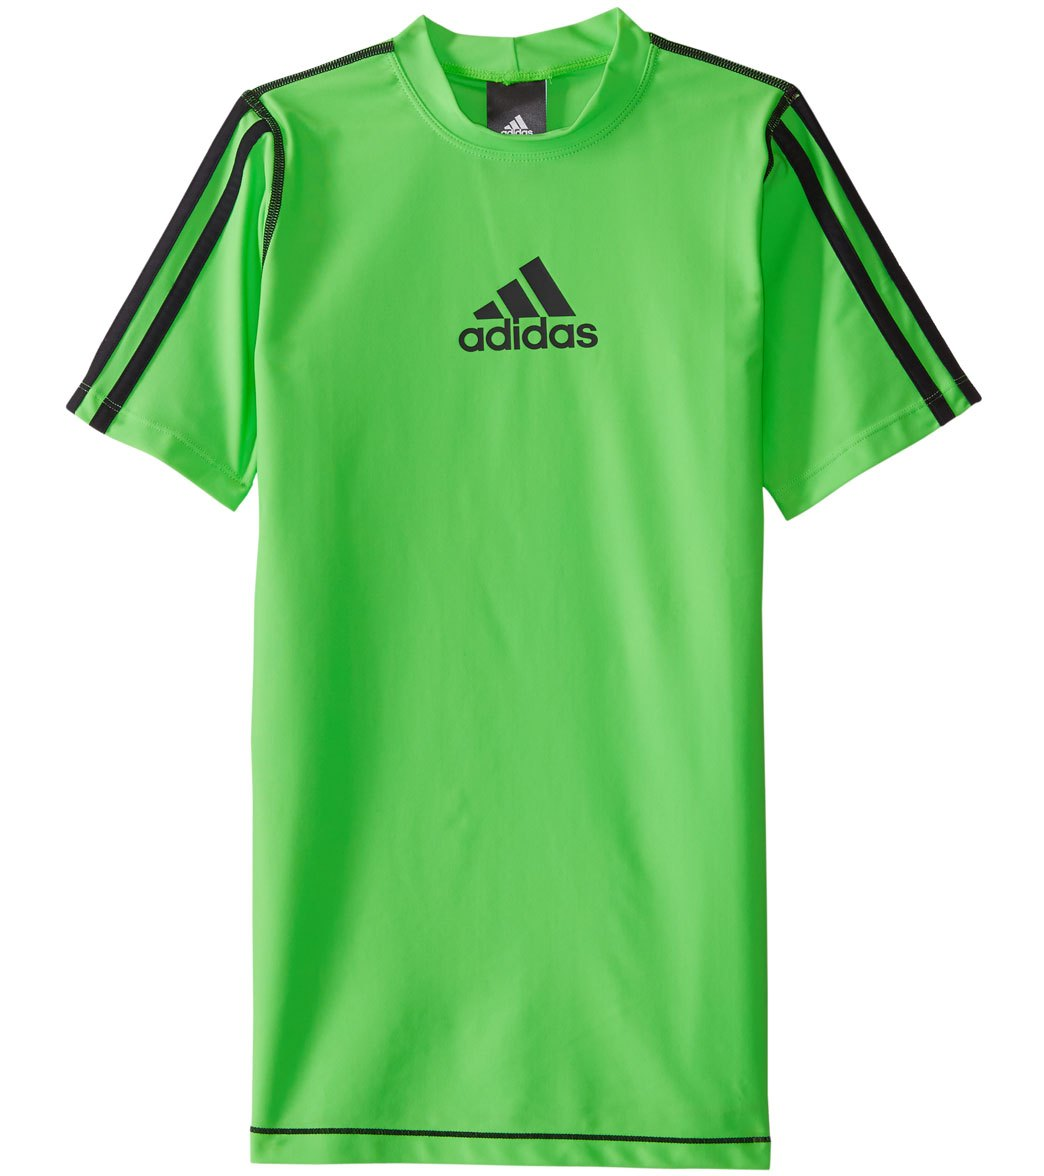 a0aeed02c0 Adidas Boys  S S Swim Tee (8-20) at SwimOutlet.com